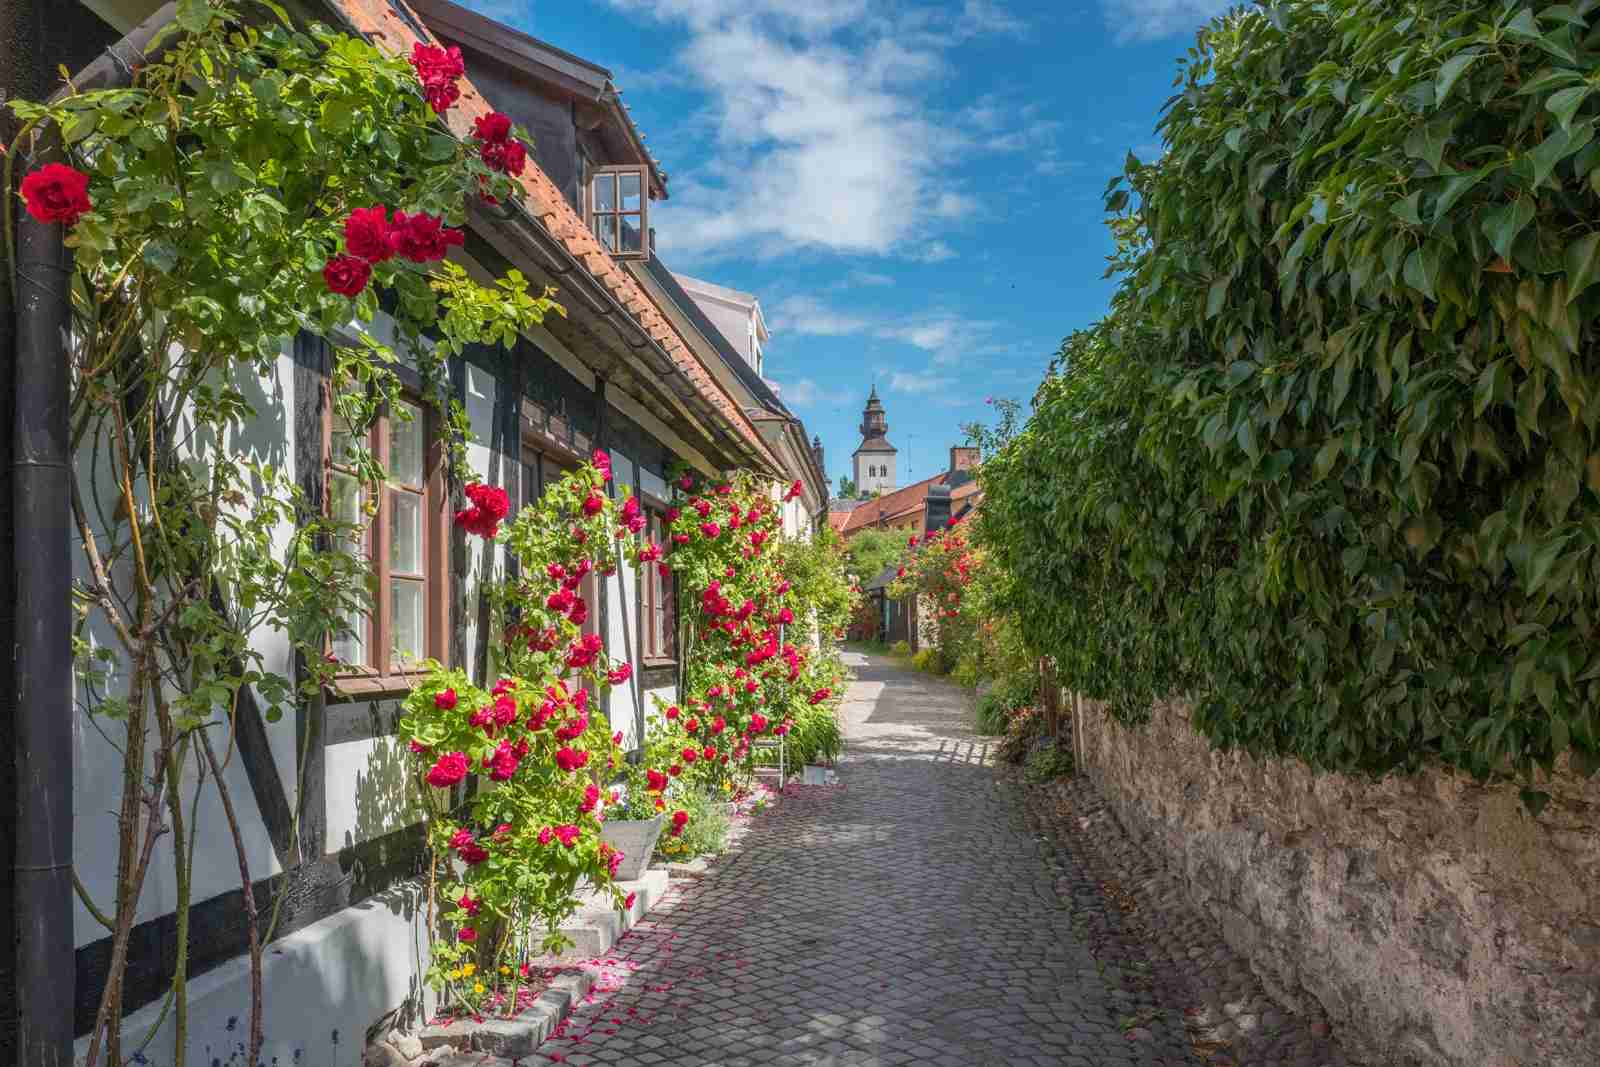 Medieval alley in Hanse town Visby, Sweden. (Photo by Rolf 52 / Shutterstock)